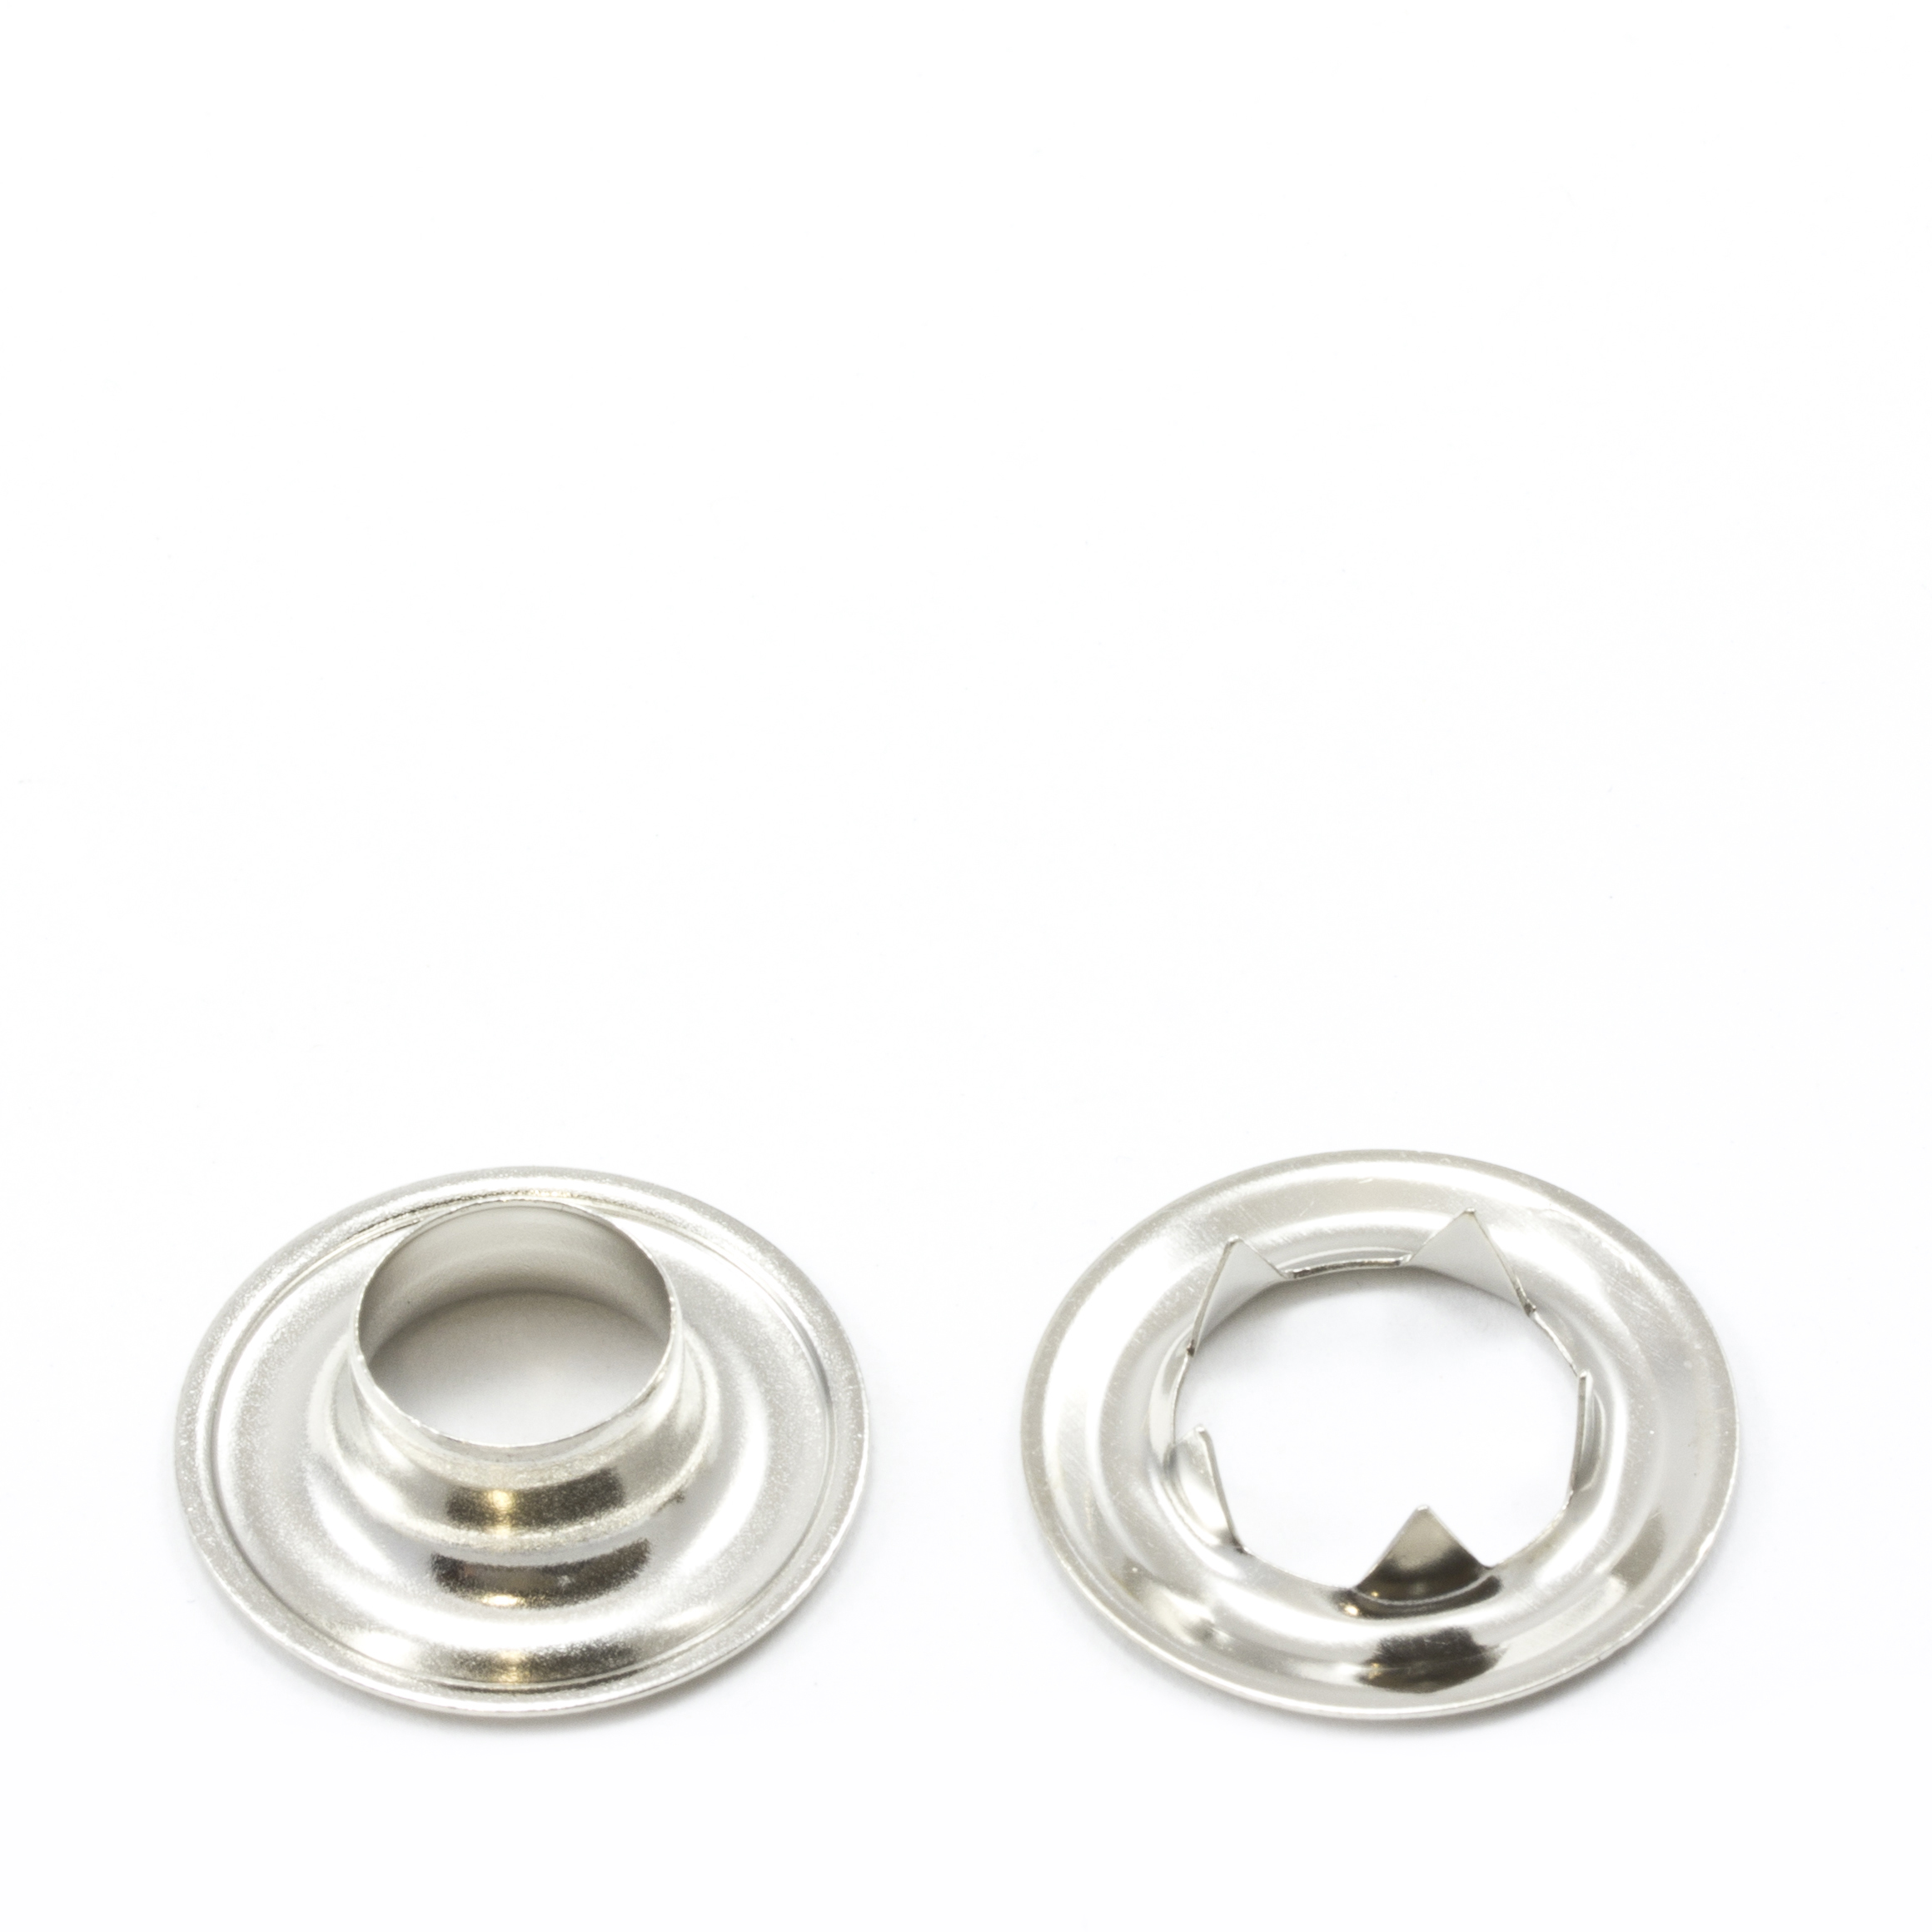 Grommet with Tooth Washer #2 Brass Nickel Plated 3/8